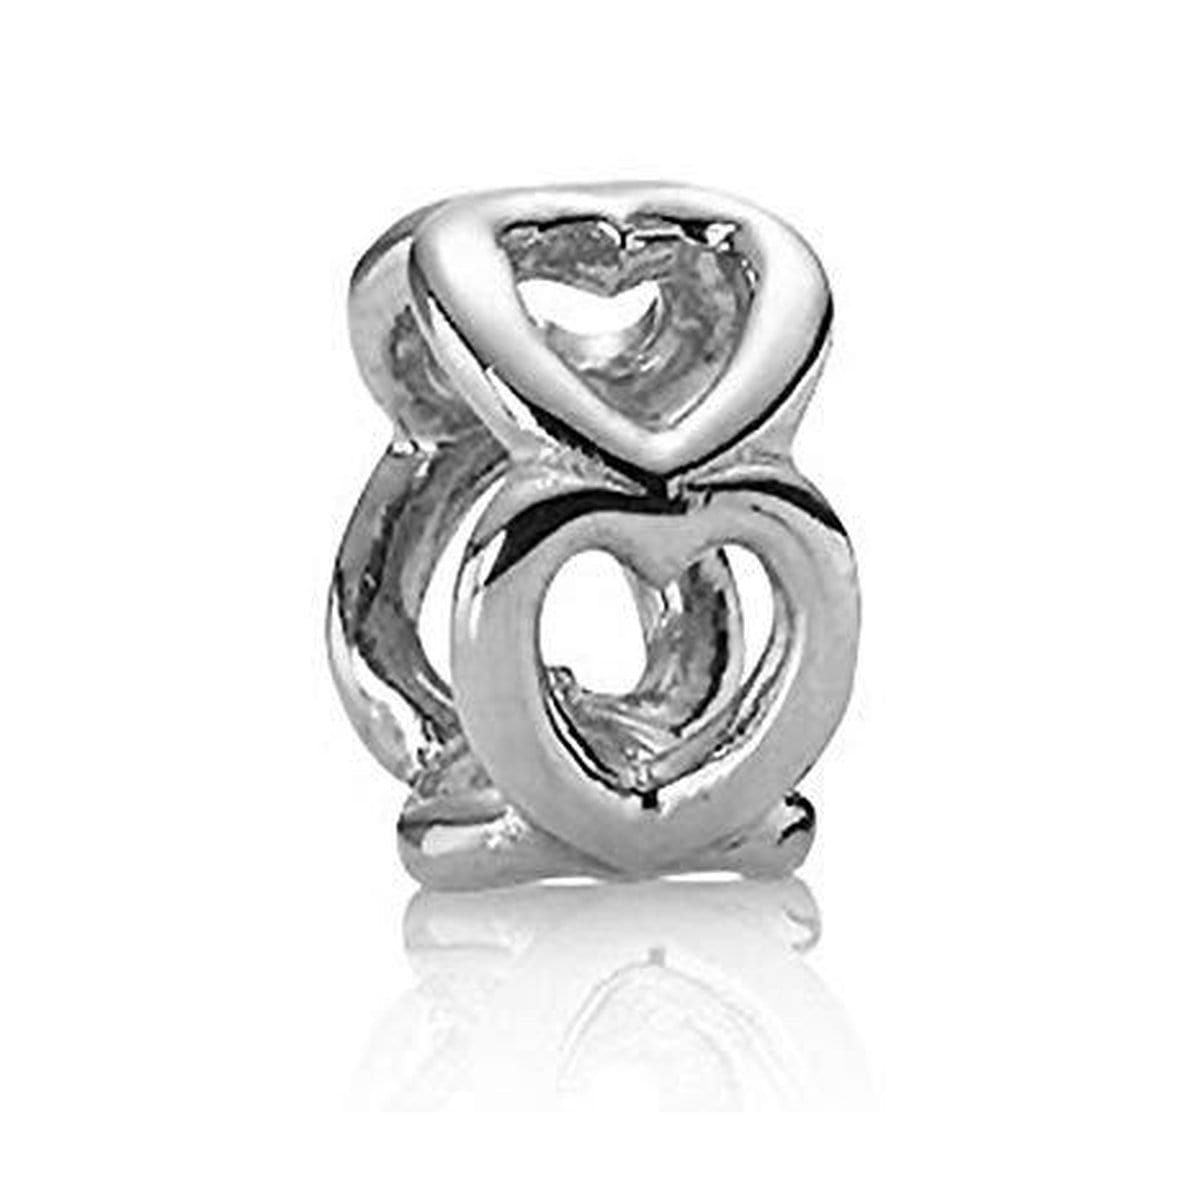 Open Heart Spacer Clip Charm - 790454-Pandora-Renee Taylor Gallery